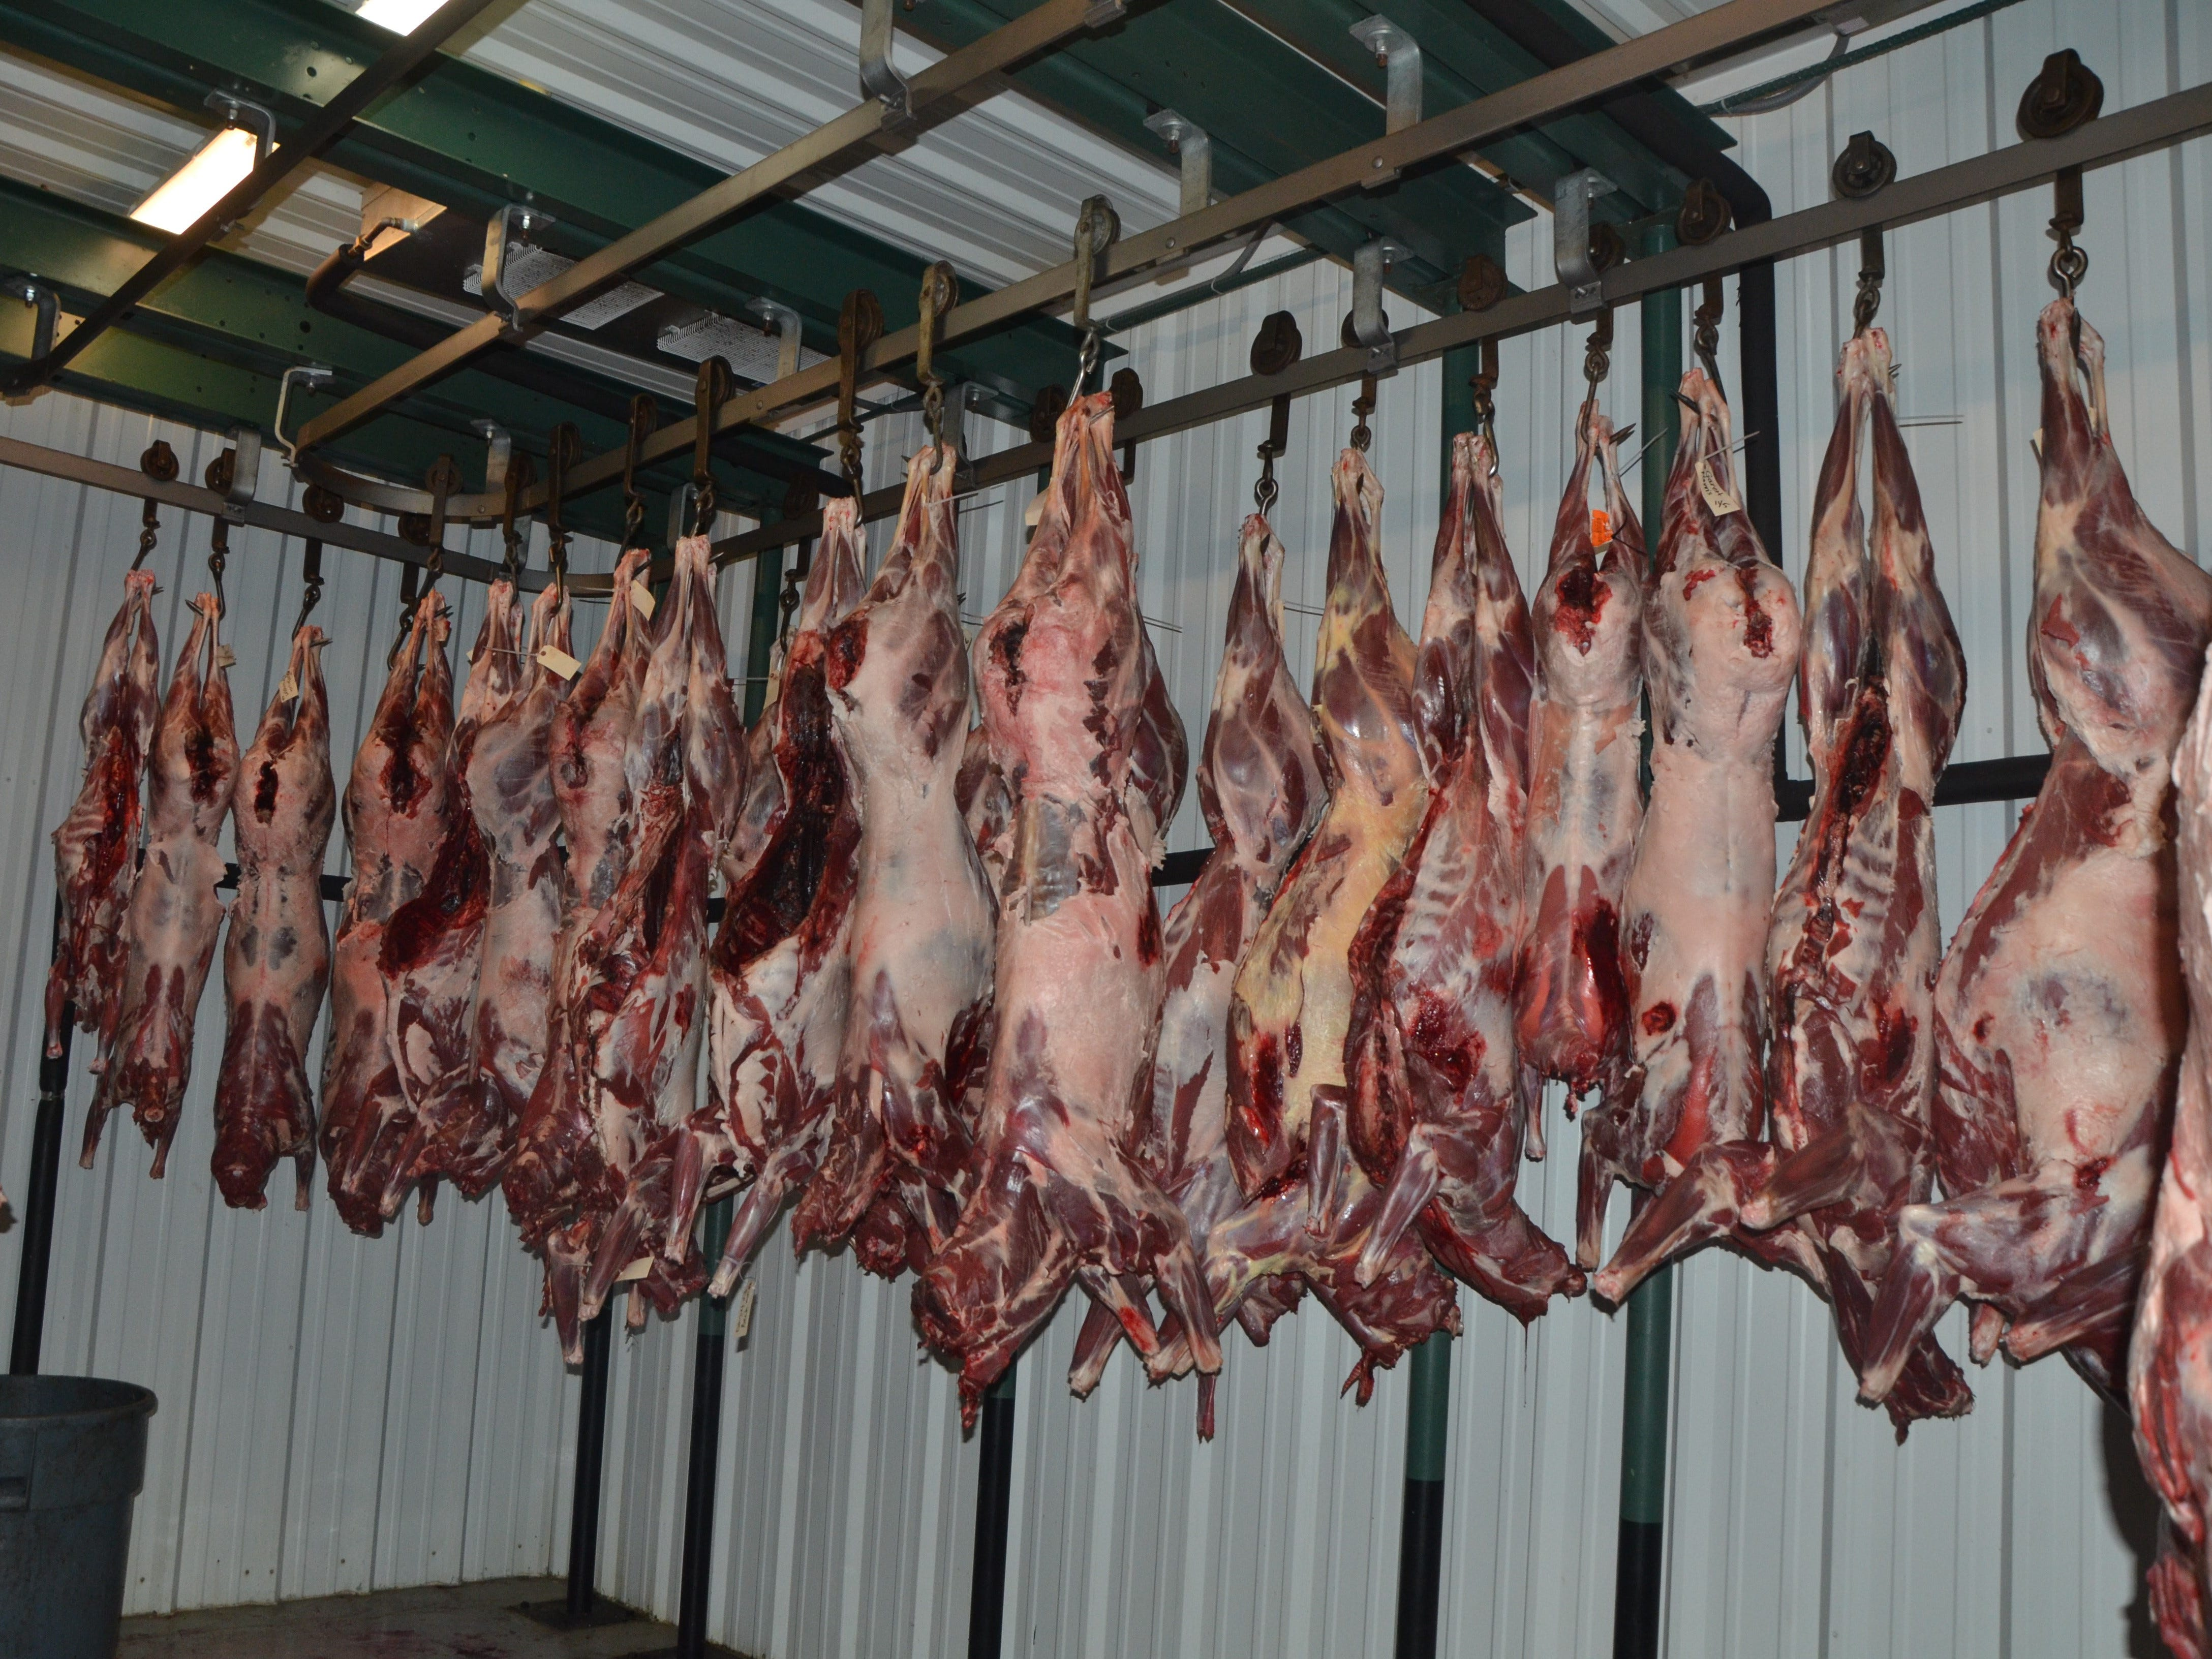 The meat freezer inside Whitetail Farms in Olivet.